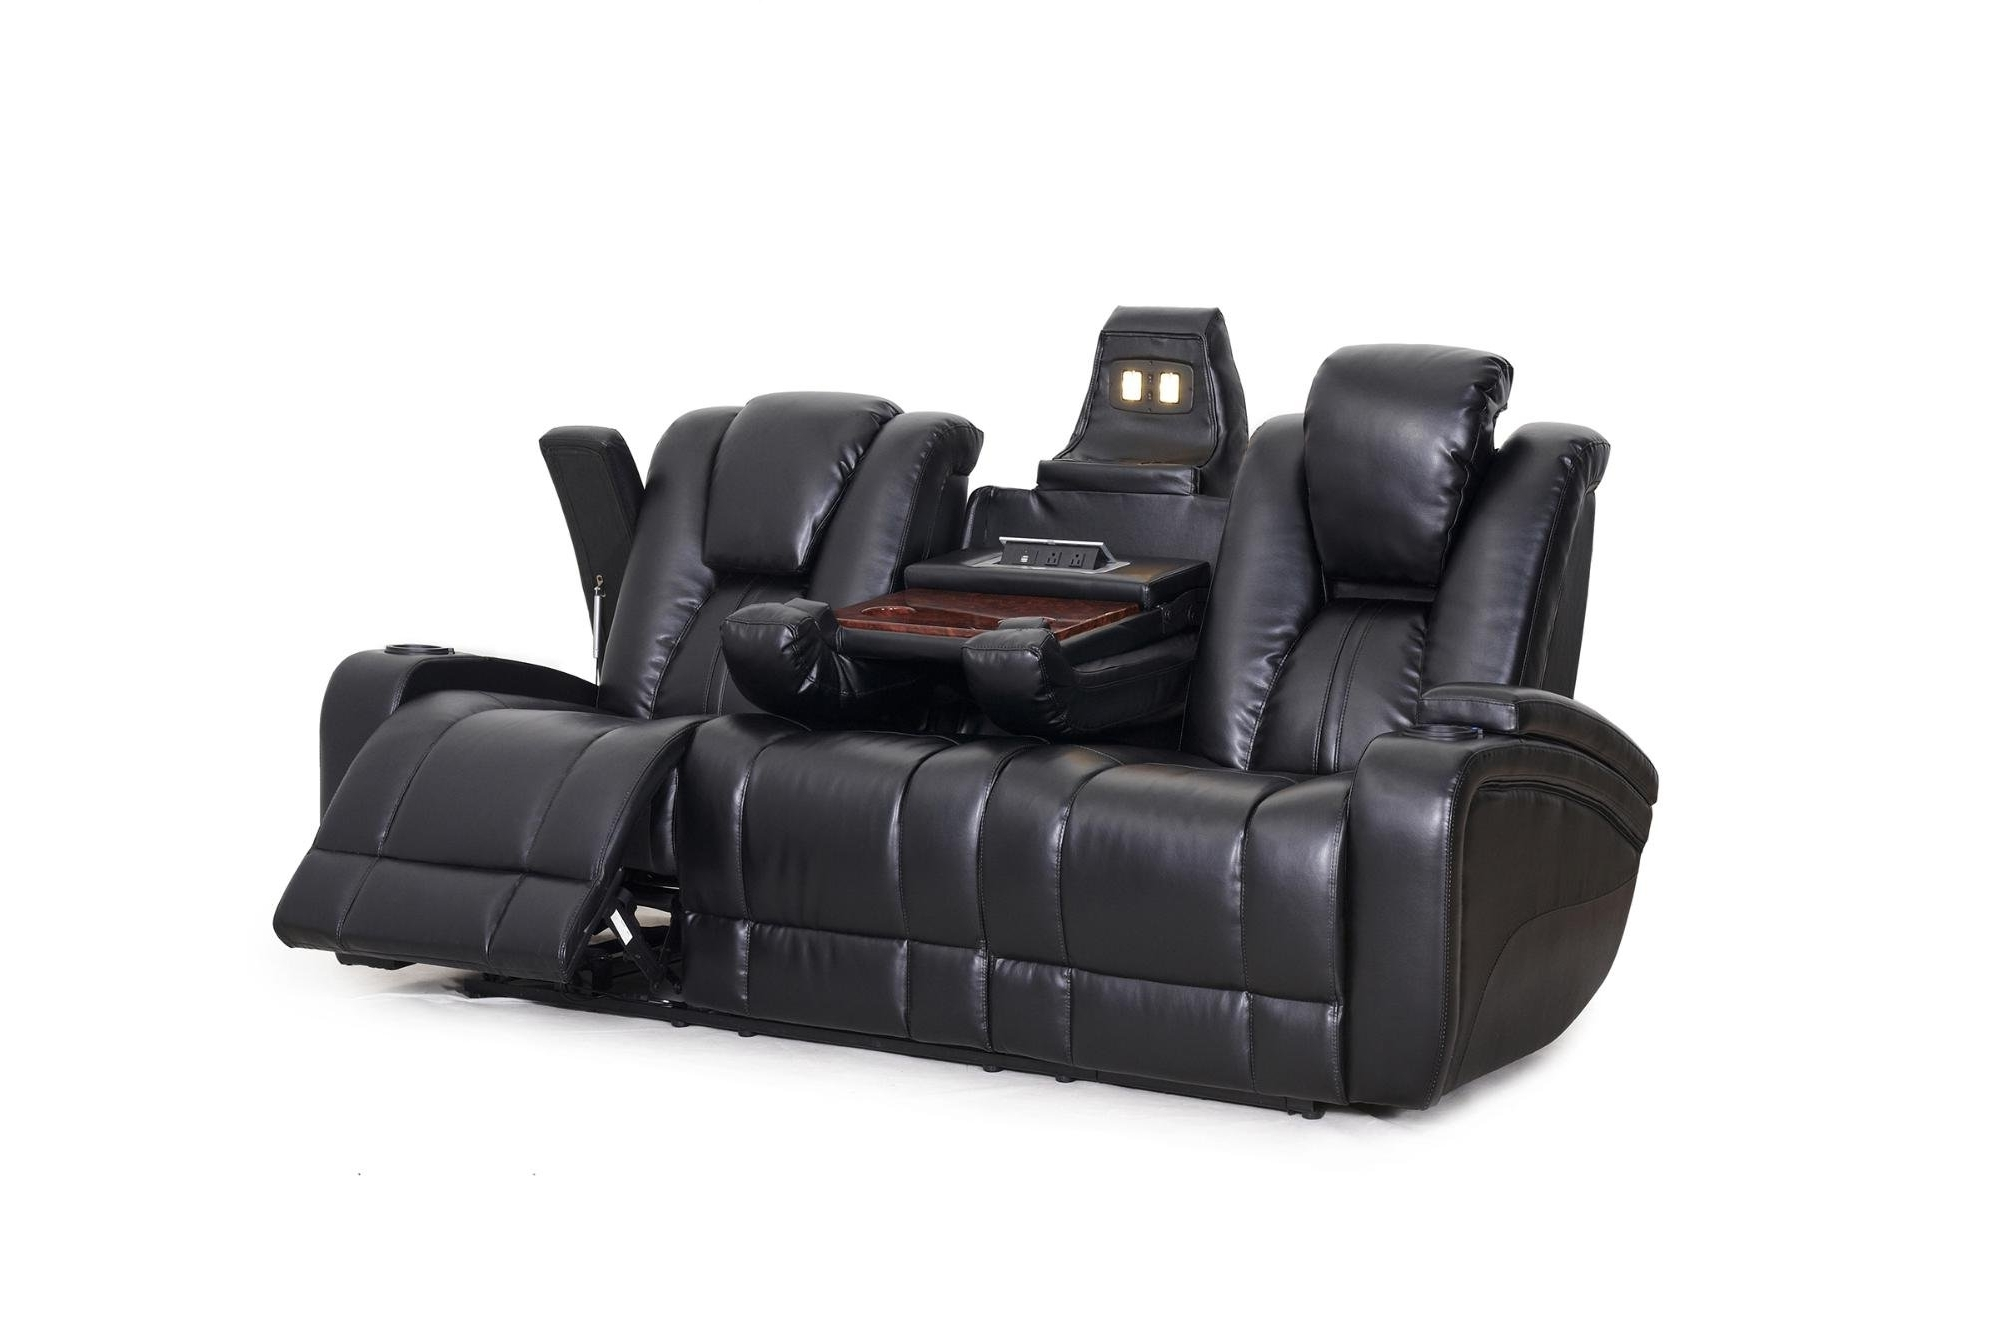 Current Seatcraft Transformer Reclining Sofa With Power And Drop Down Throughout Recliner Sofas (View 16 of 17)